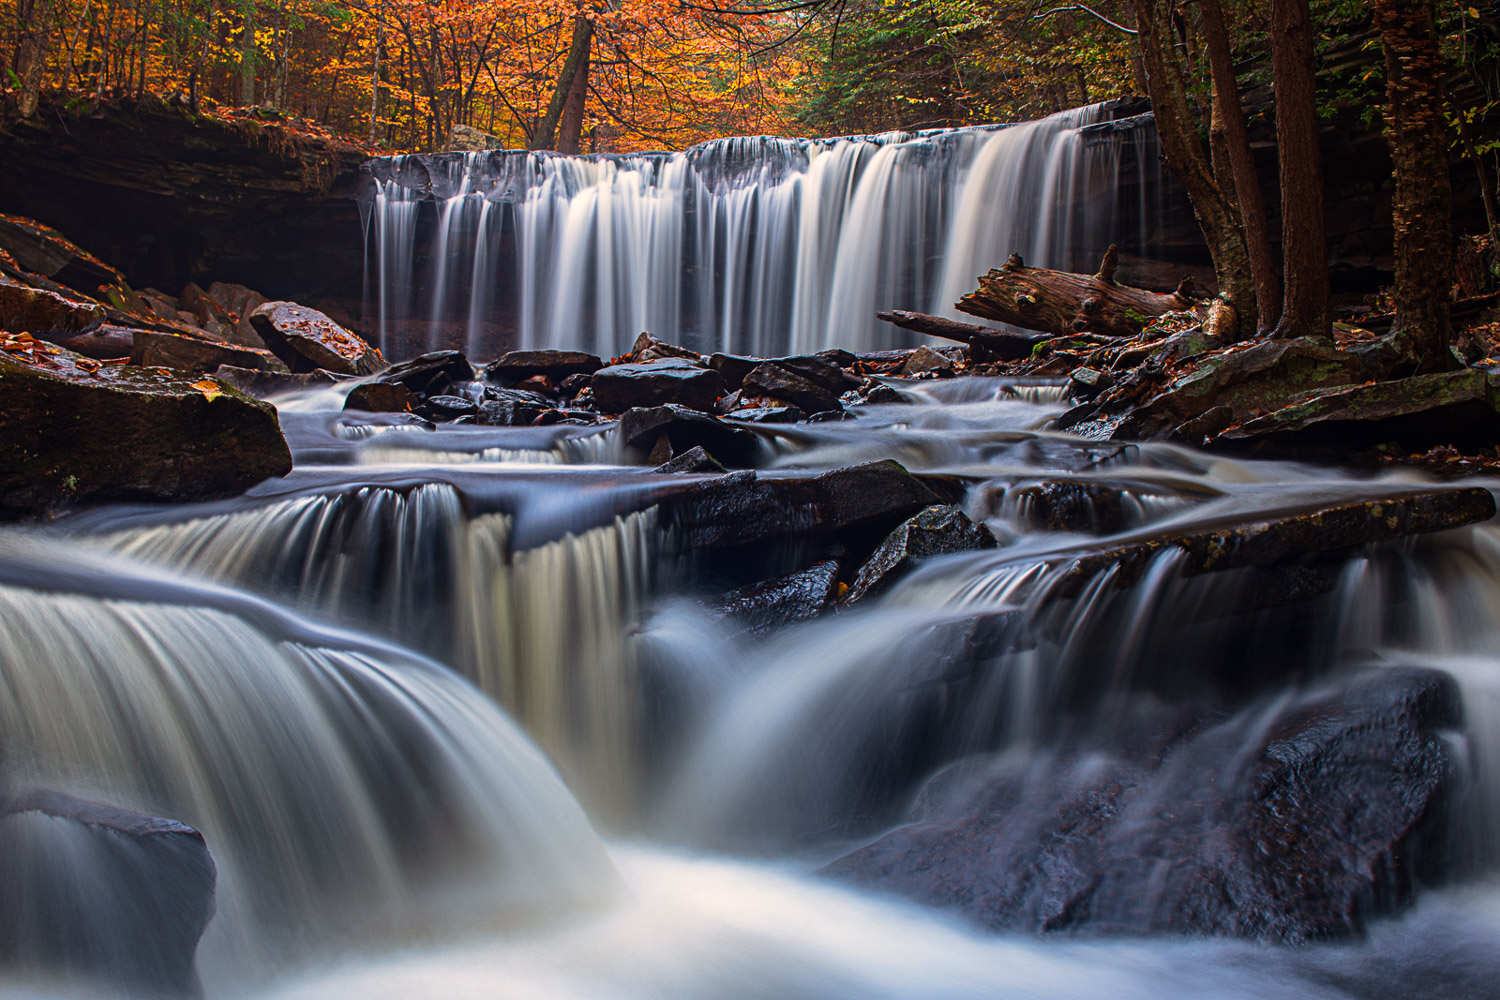 Autumn at Onieda Falls in Ricketts Glen State Park.